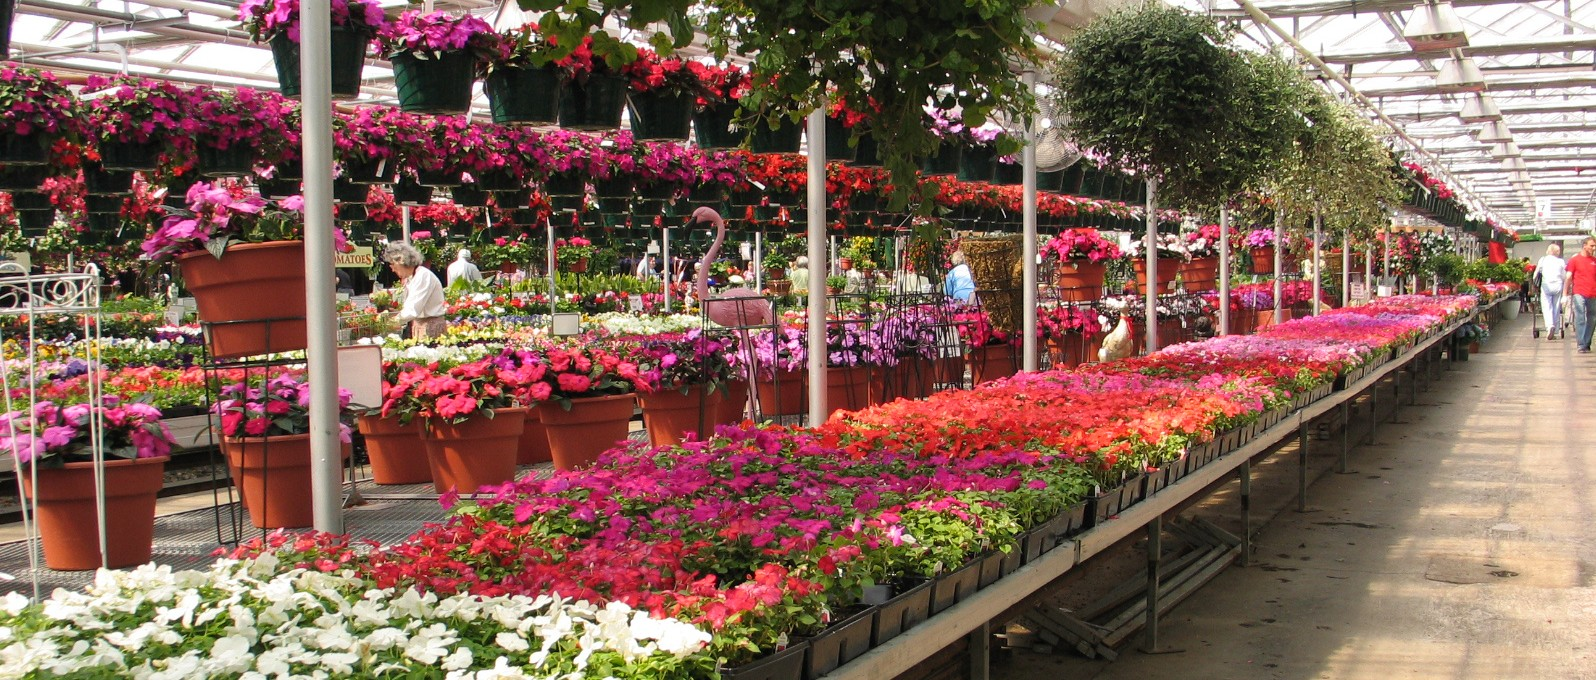 Retailers Wagners Greenhouse